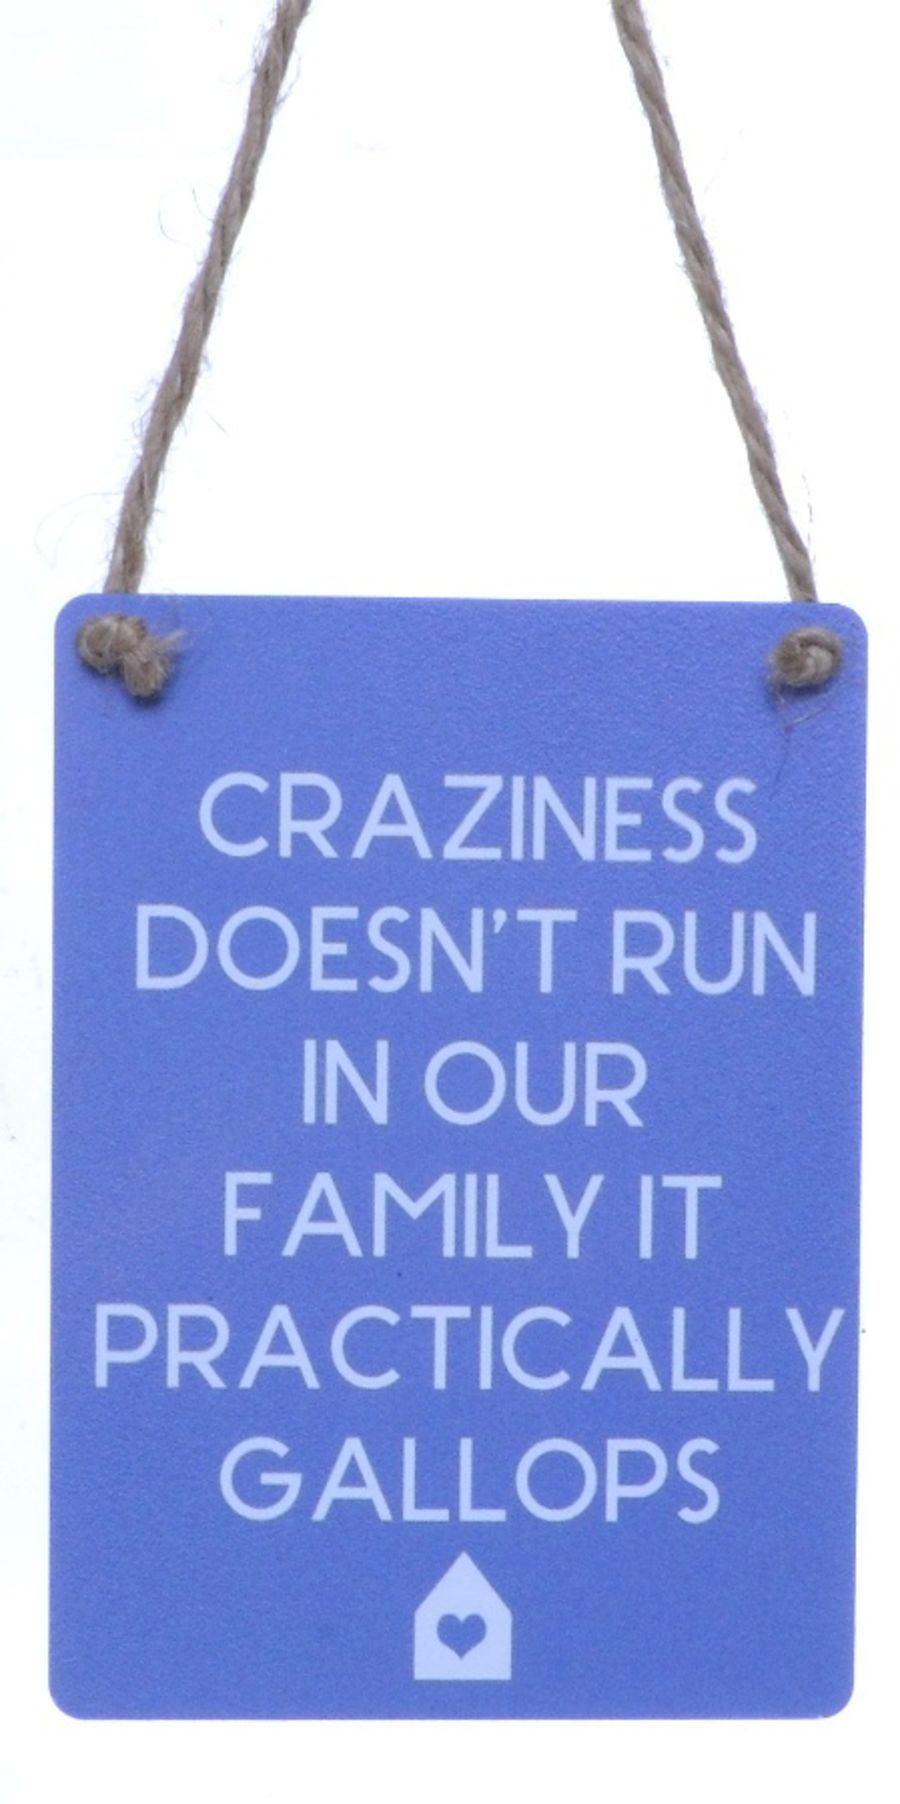 Craziness doesn't run in our family...